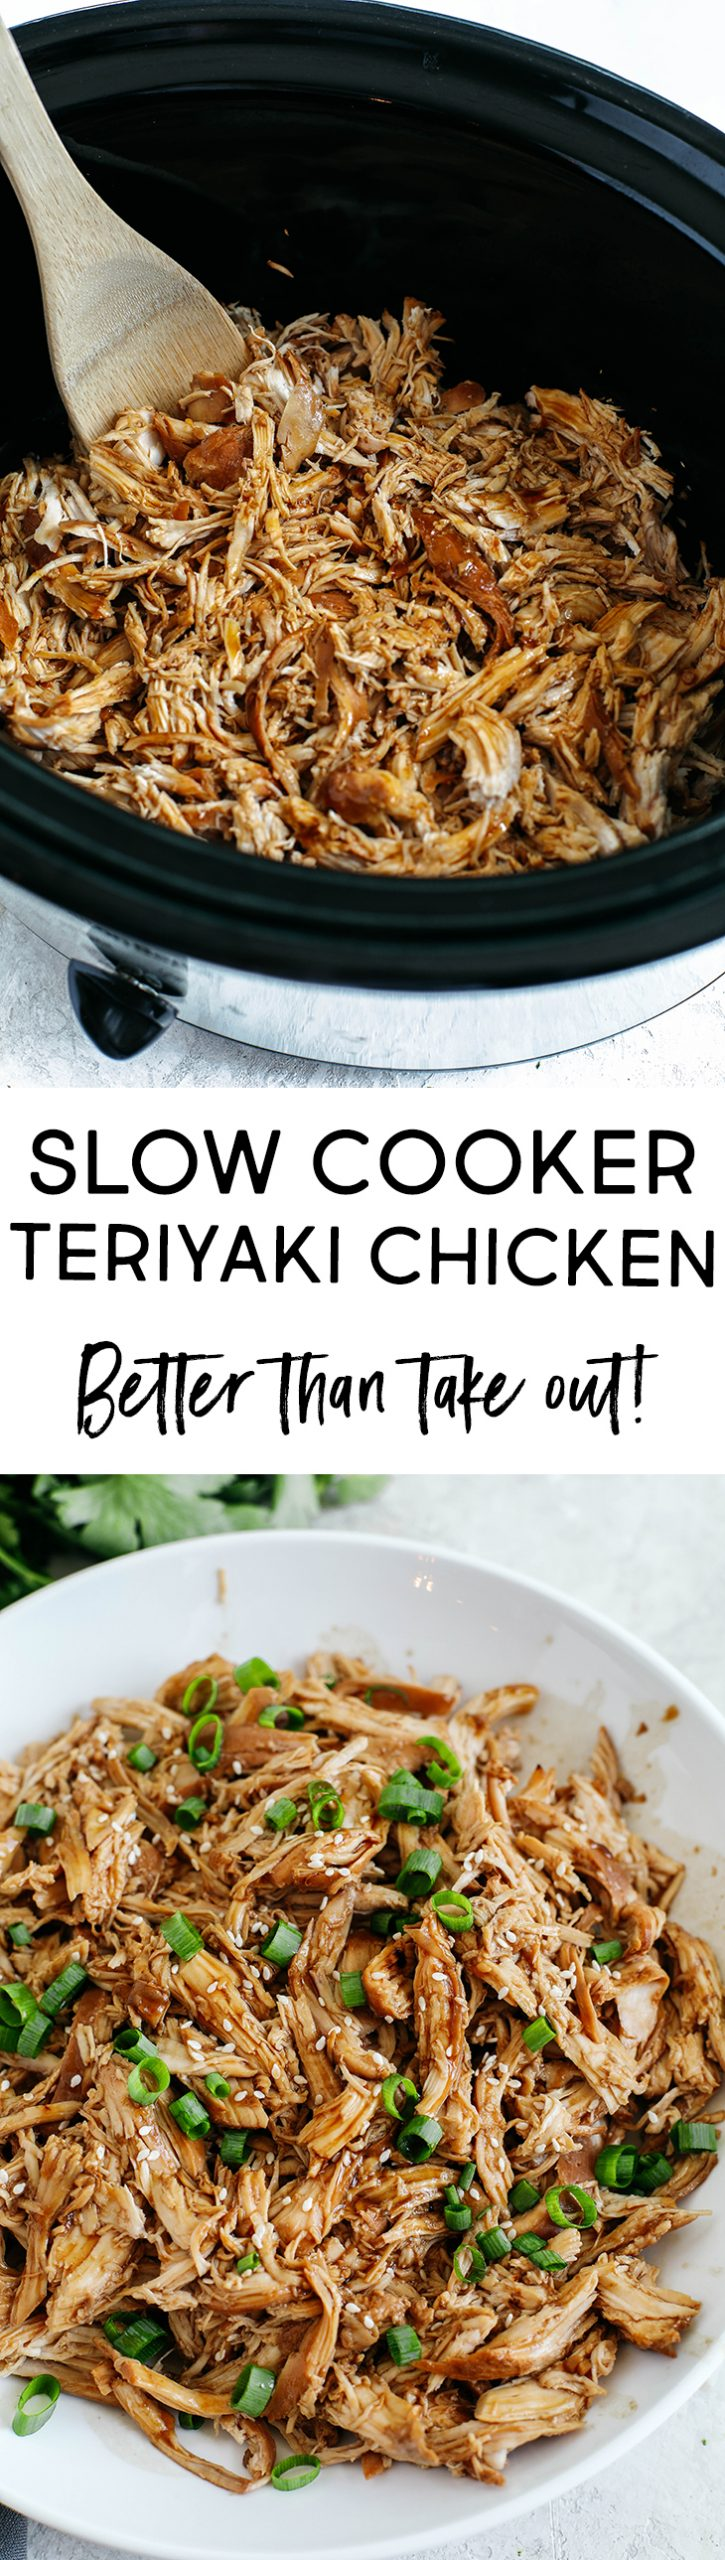 The EASIEST Crock Pot Teriyaki Chicken made with the most delicious sticky, sweet homemade sauce and served over rice or quinoa!  Better than take-out!